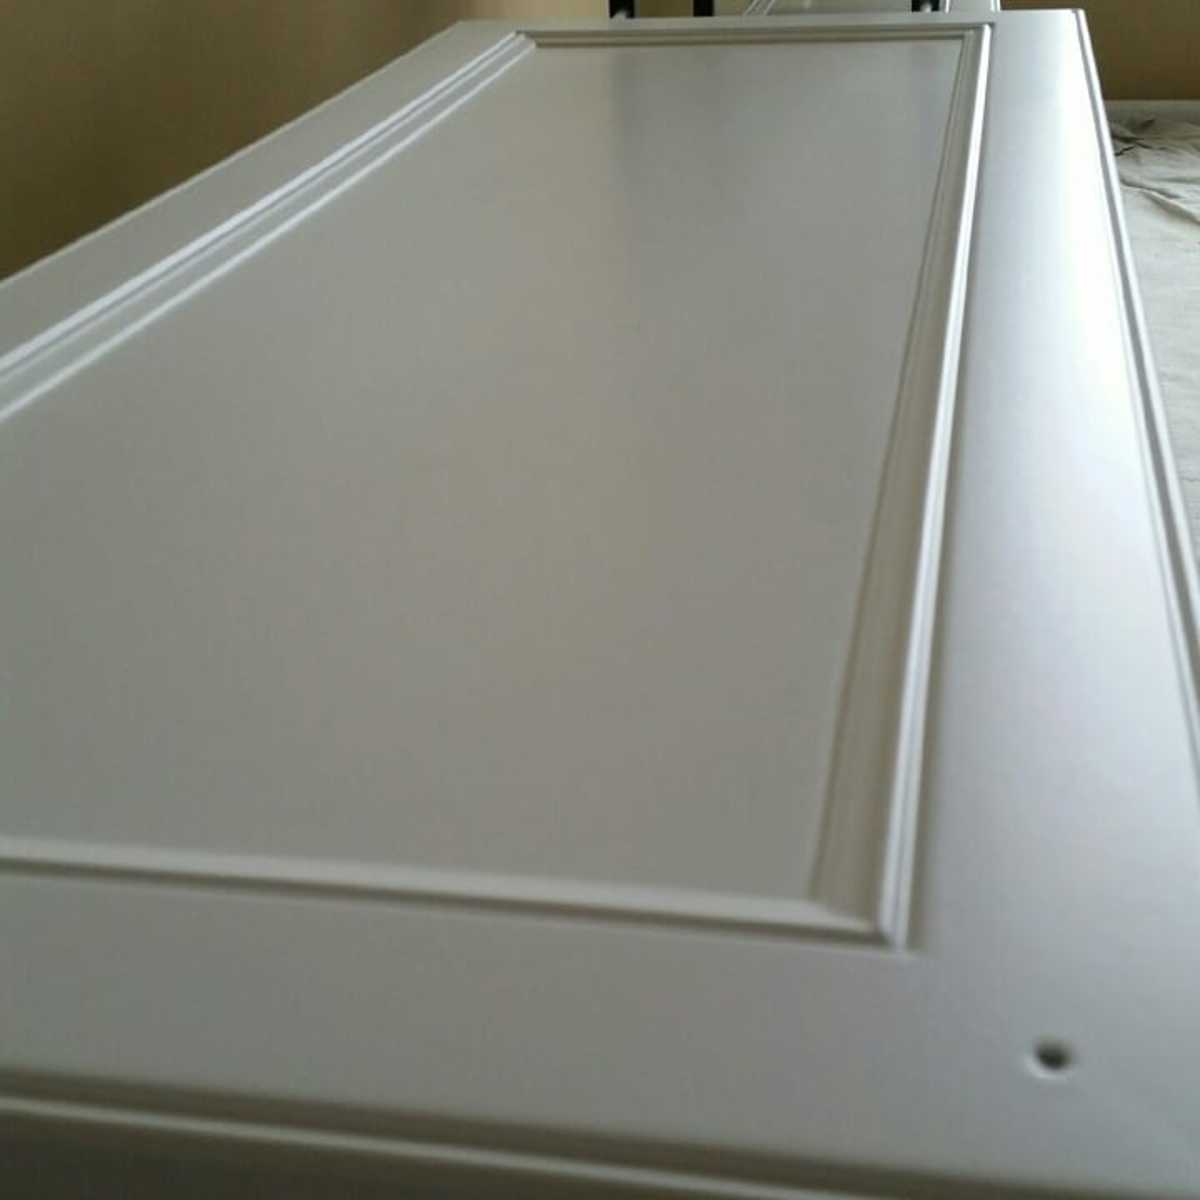 Spraying Cabinet Doors Vertically vs Laying Flat: Which One's Better?